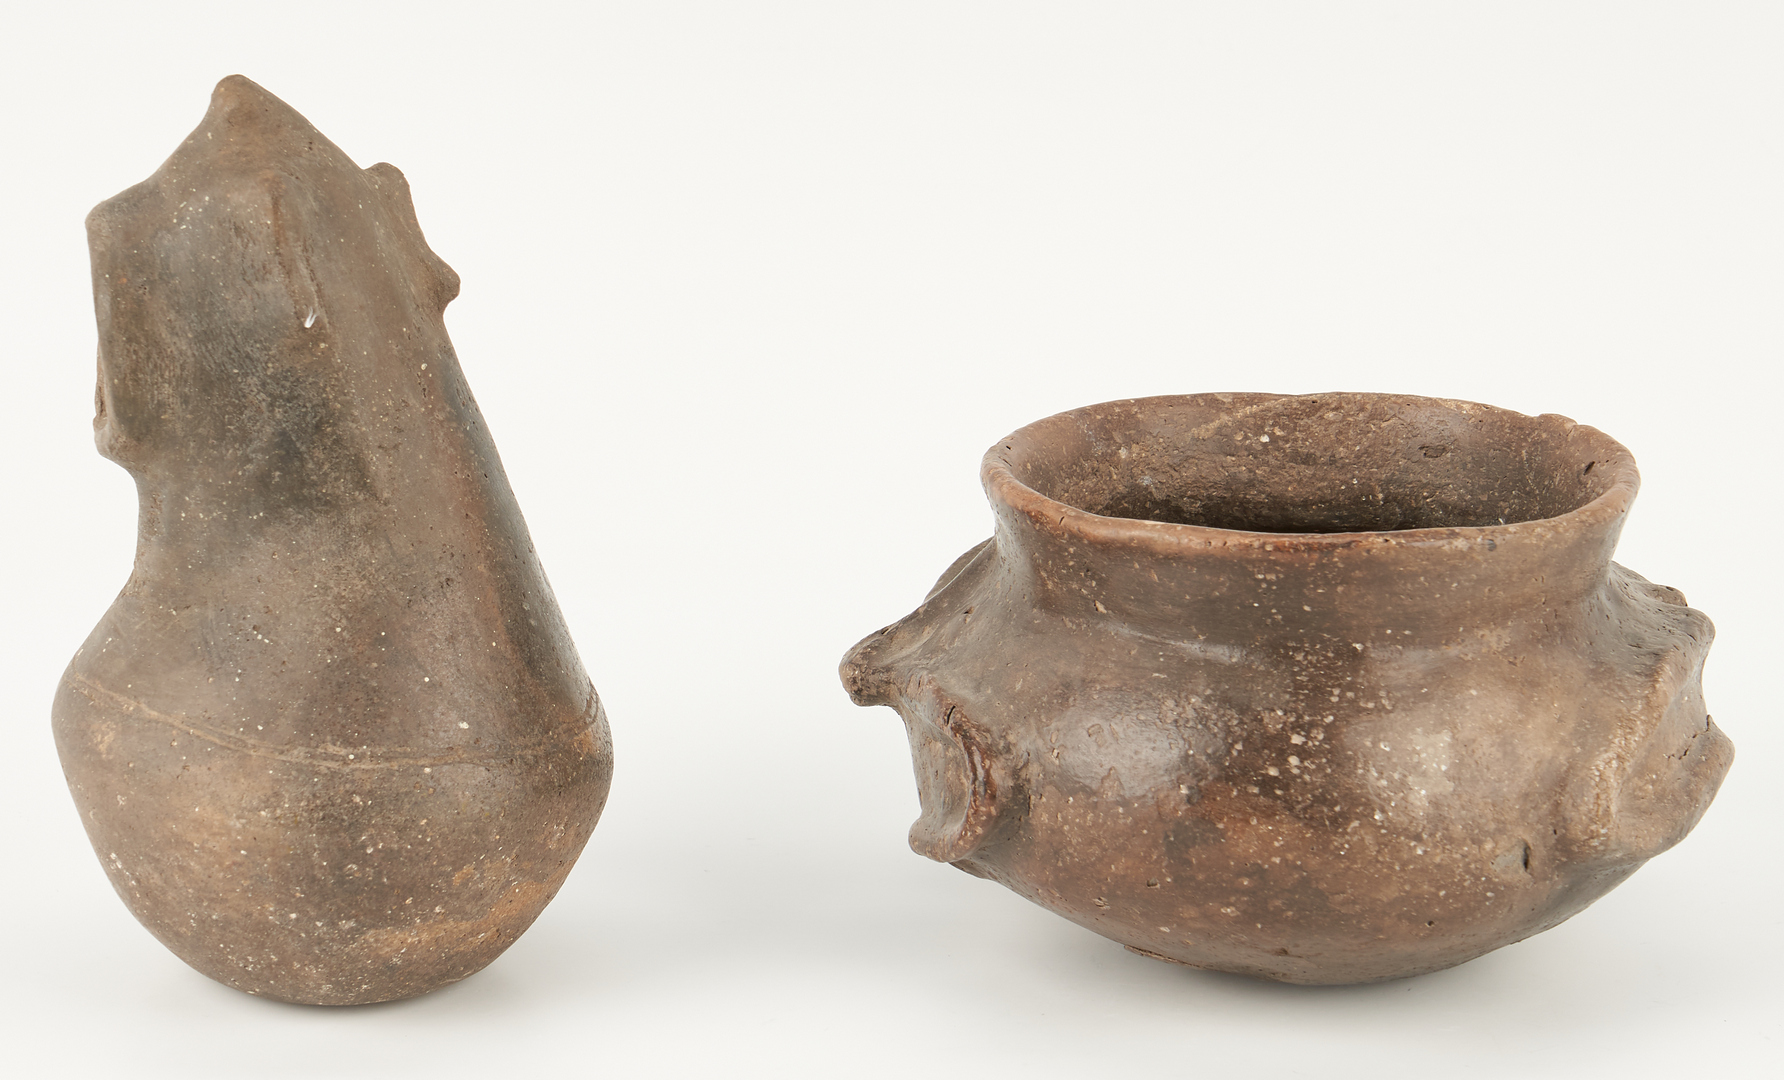 Lot 1116: 2 Mississippian Culture Caddo Effigy Pottery Items